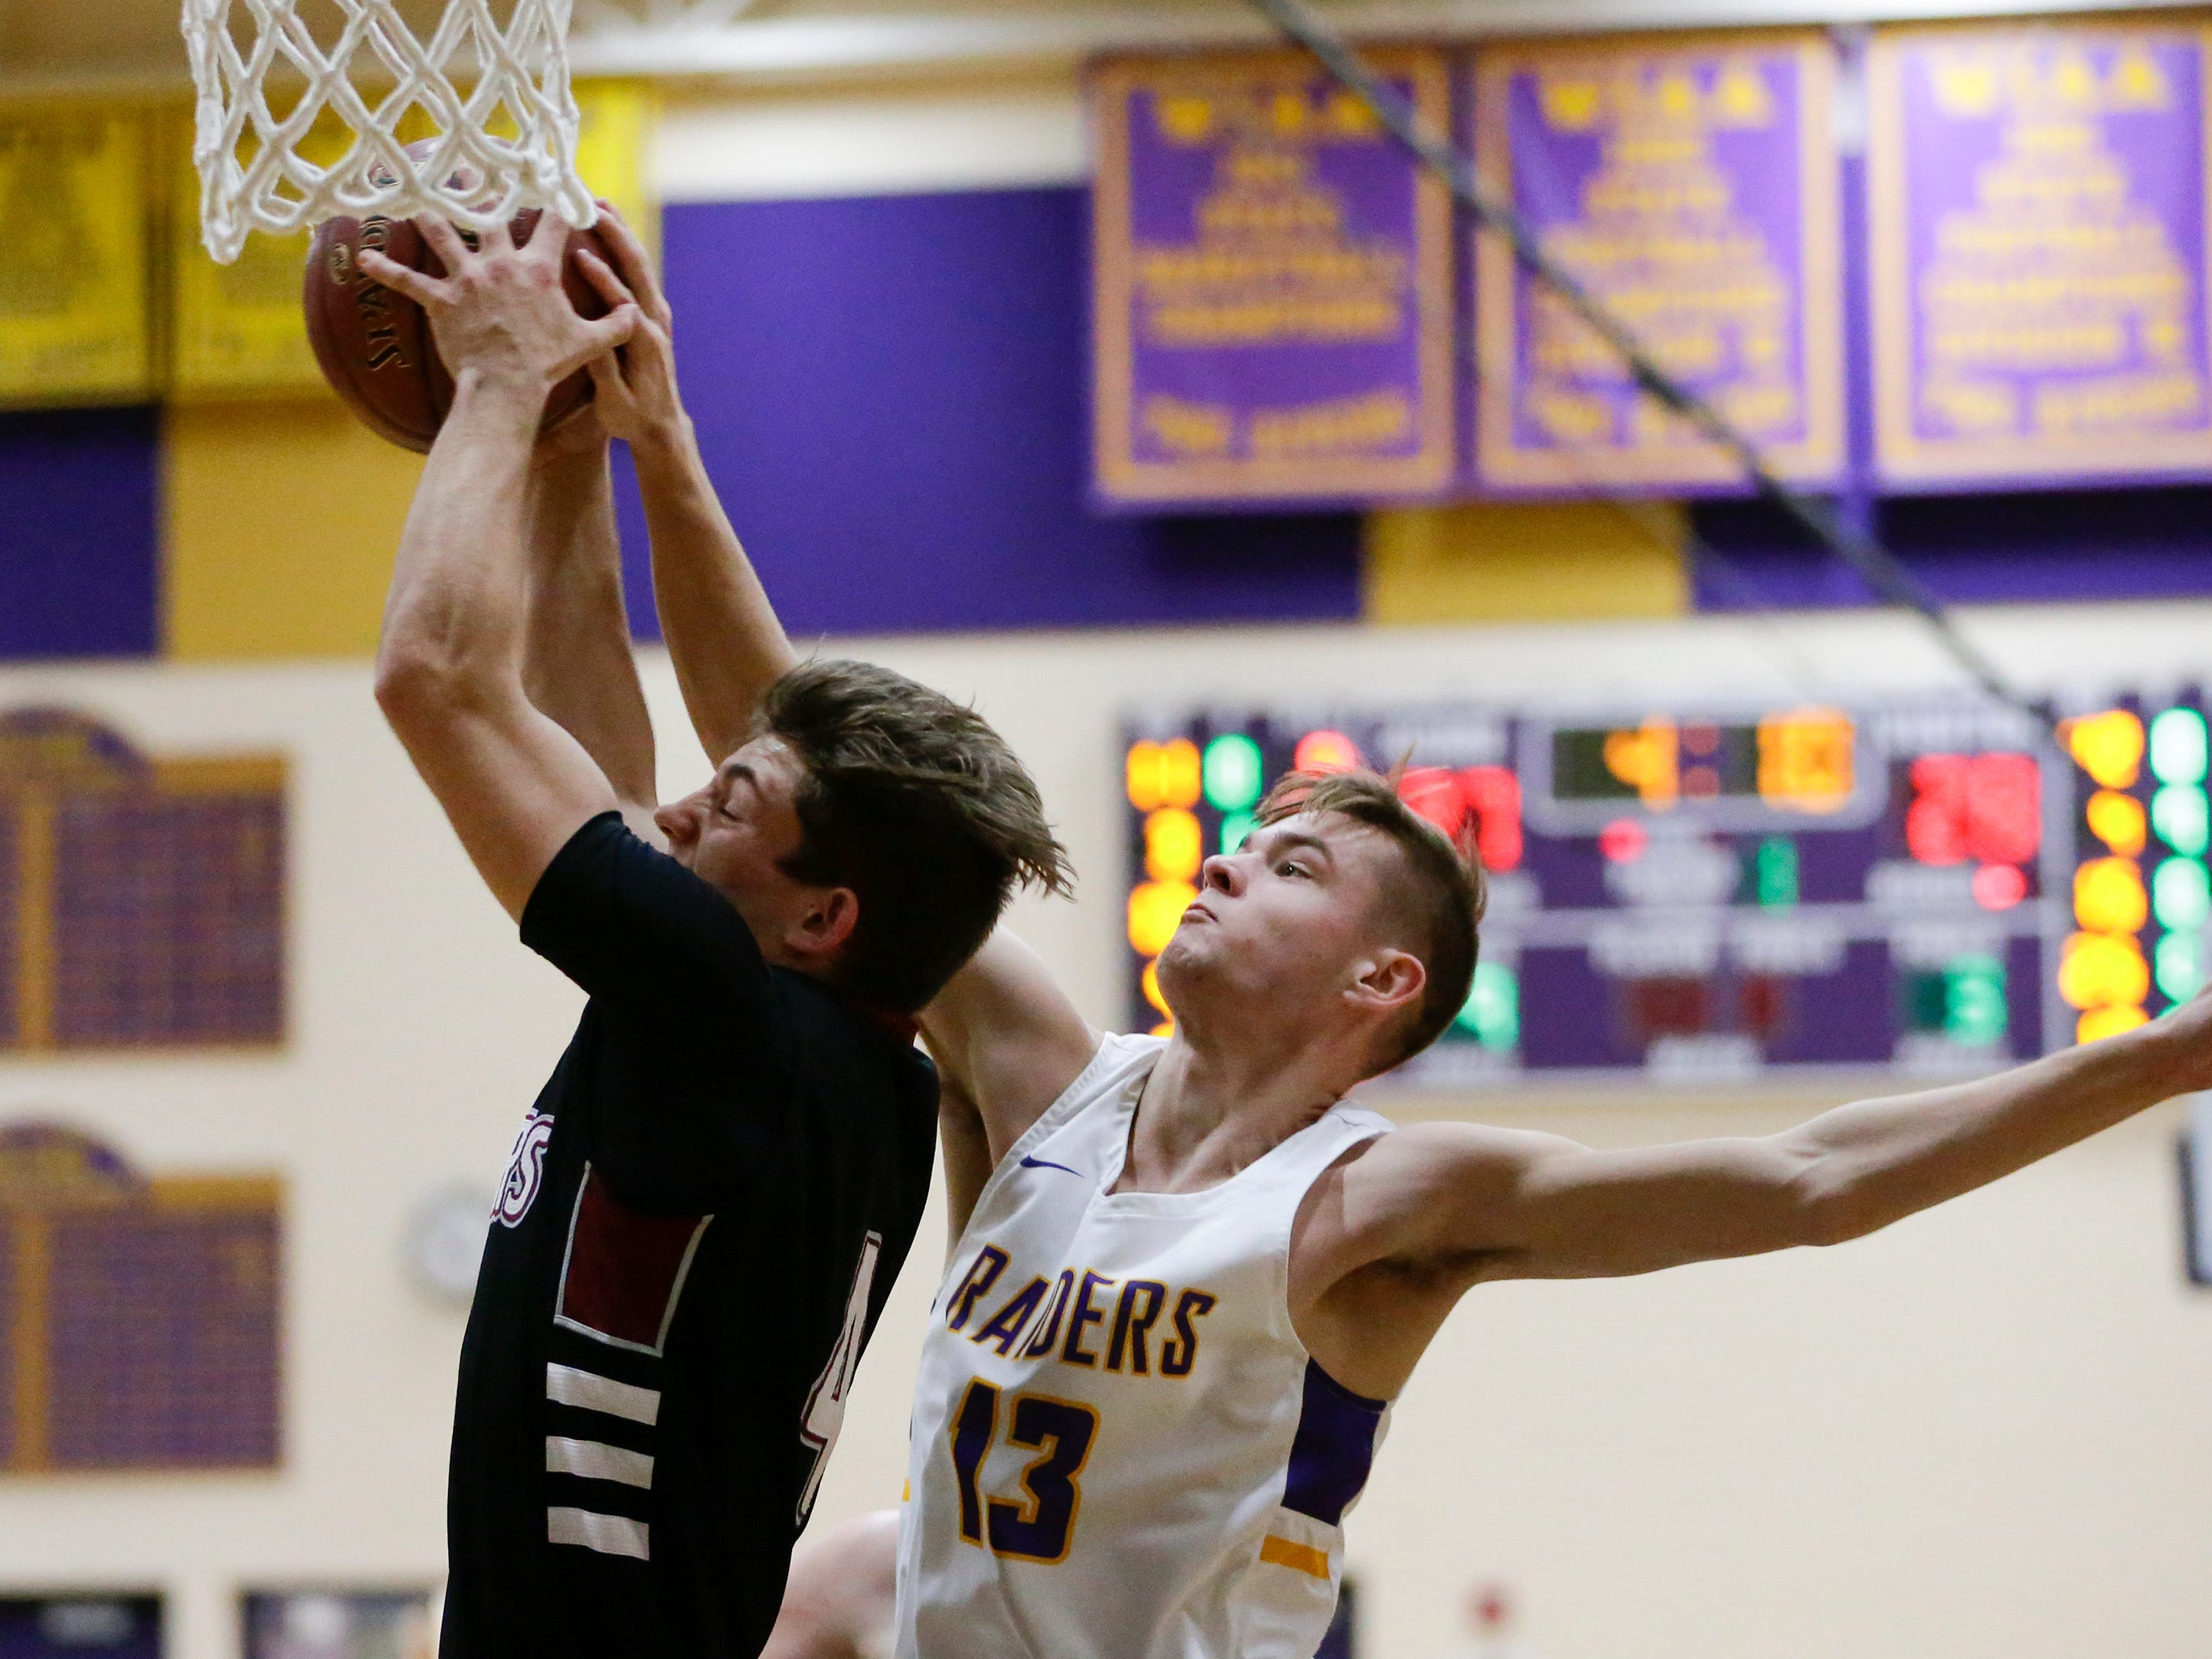 Two Rivers' David Tice goes up for a rebound against Green Bay NEW Lutheran at Two Rivers High School Tuesday, January 8, 2019, in Two Rivers, Wis. Joshua Clark/USA TODAY NETWORK-Wisconsin